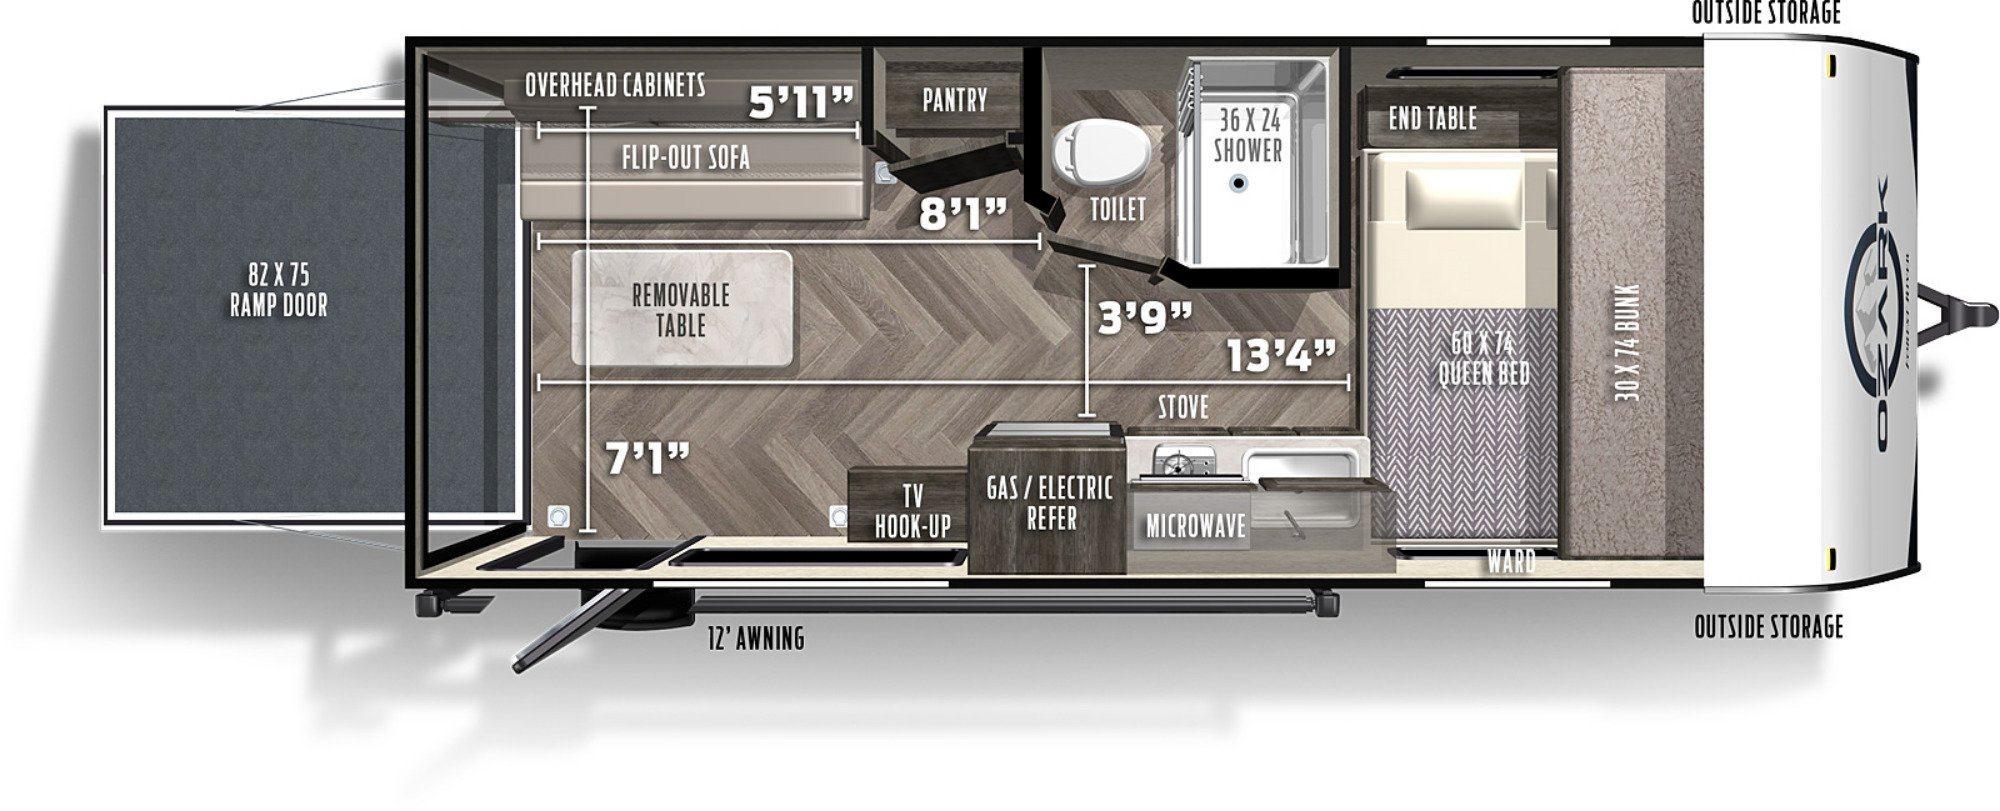 View Floor Plan for 2021 FOREST RIVER OZARK 1700TH